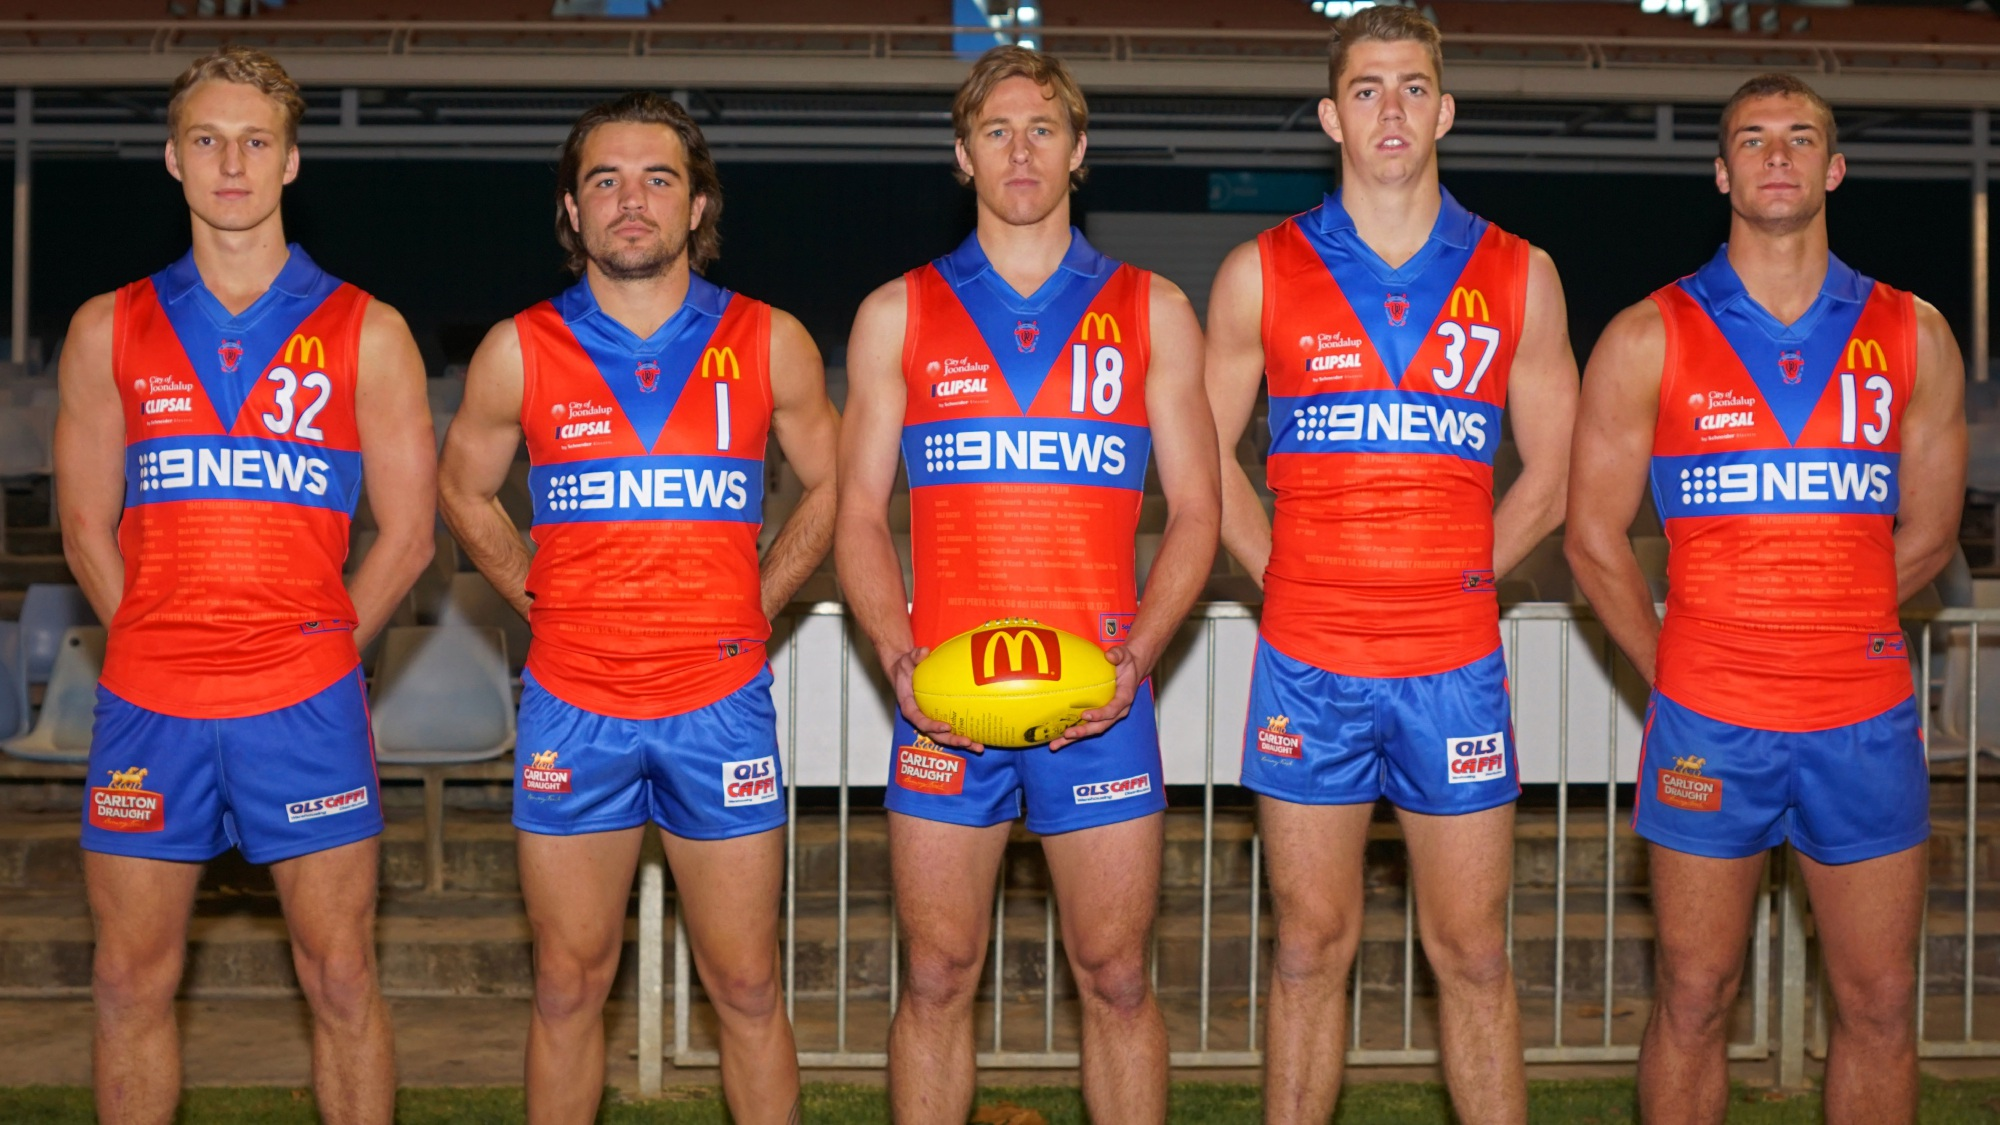 West Perth model the 1941 premiership replica guernsey they will wear agains East Fremantle. Picture: Matt Beilken